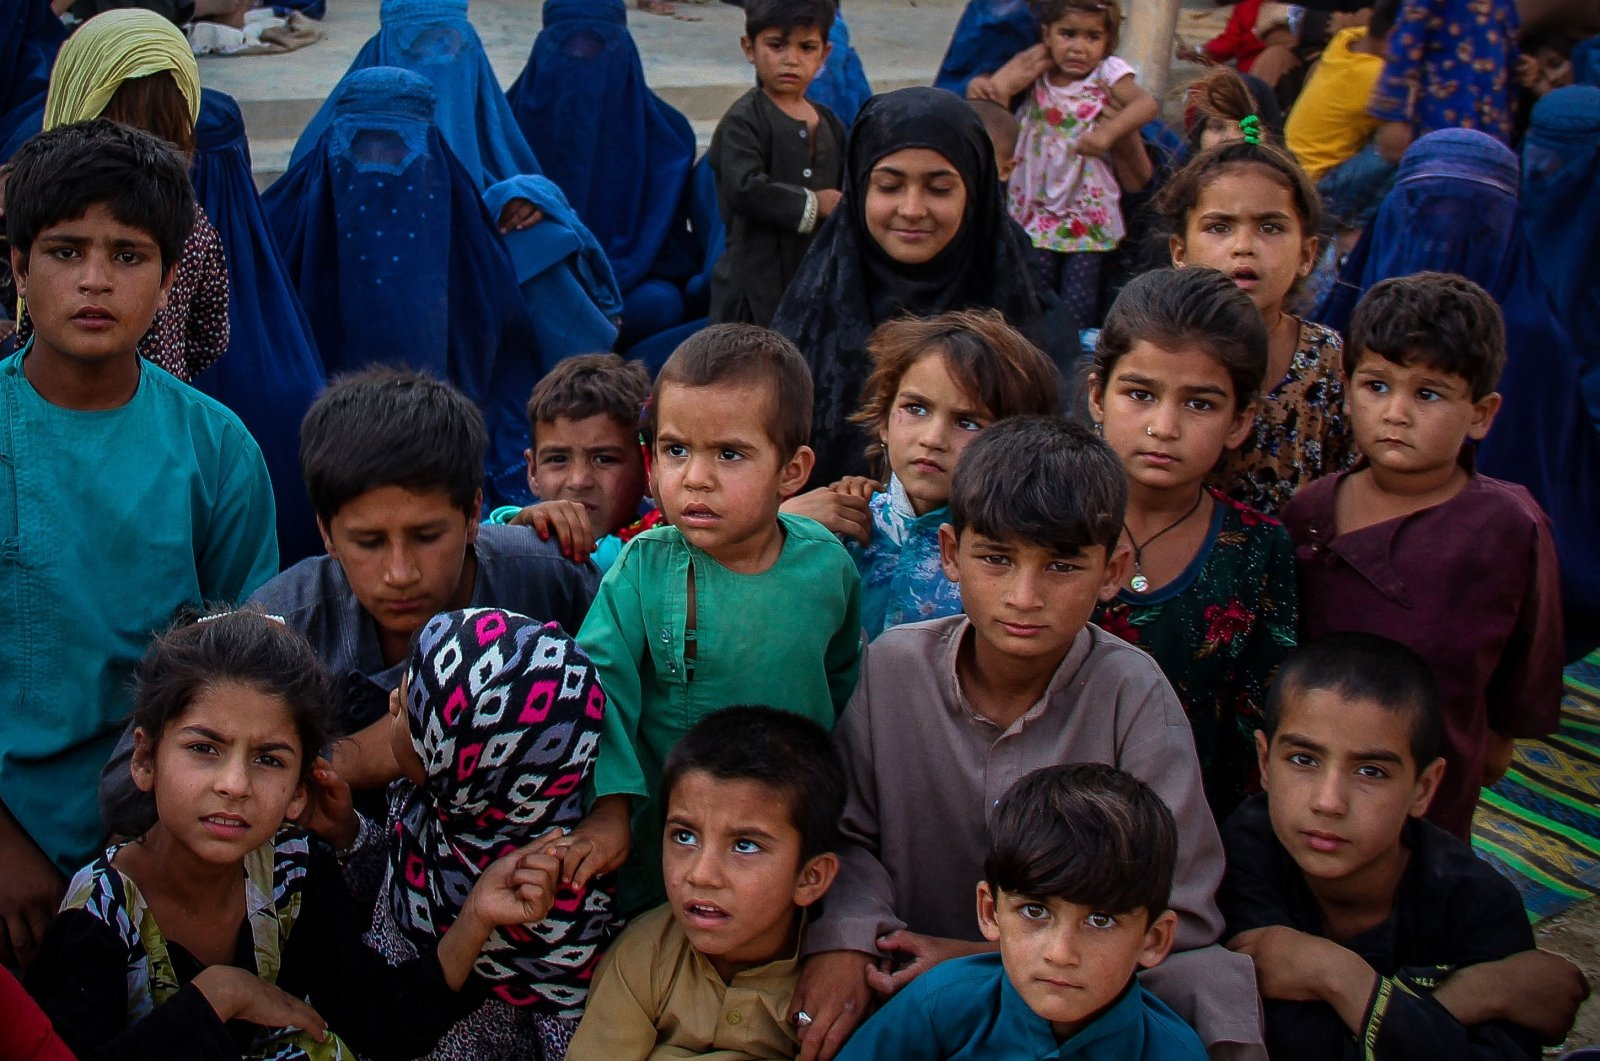 Children from internally displaced Afghan families arriving from the districts of Khan Abad, Ali Abad and Imam Sahib who fled from ongoing battles between Taliban and Afghan security forces, look on inside the premises of a school in Kunduz city, Afghanistan, June 26, 2021. (AFP Photo)